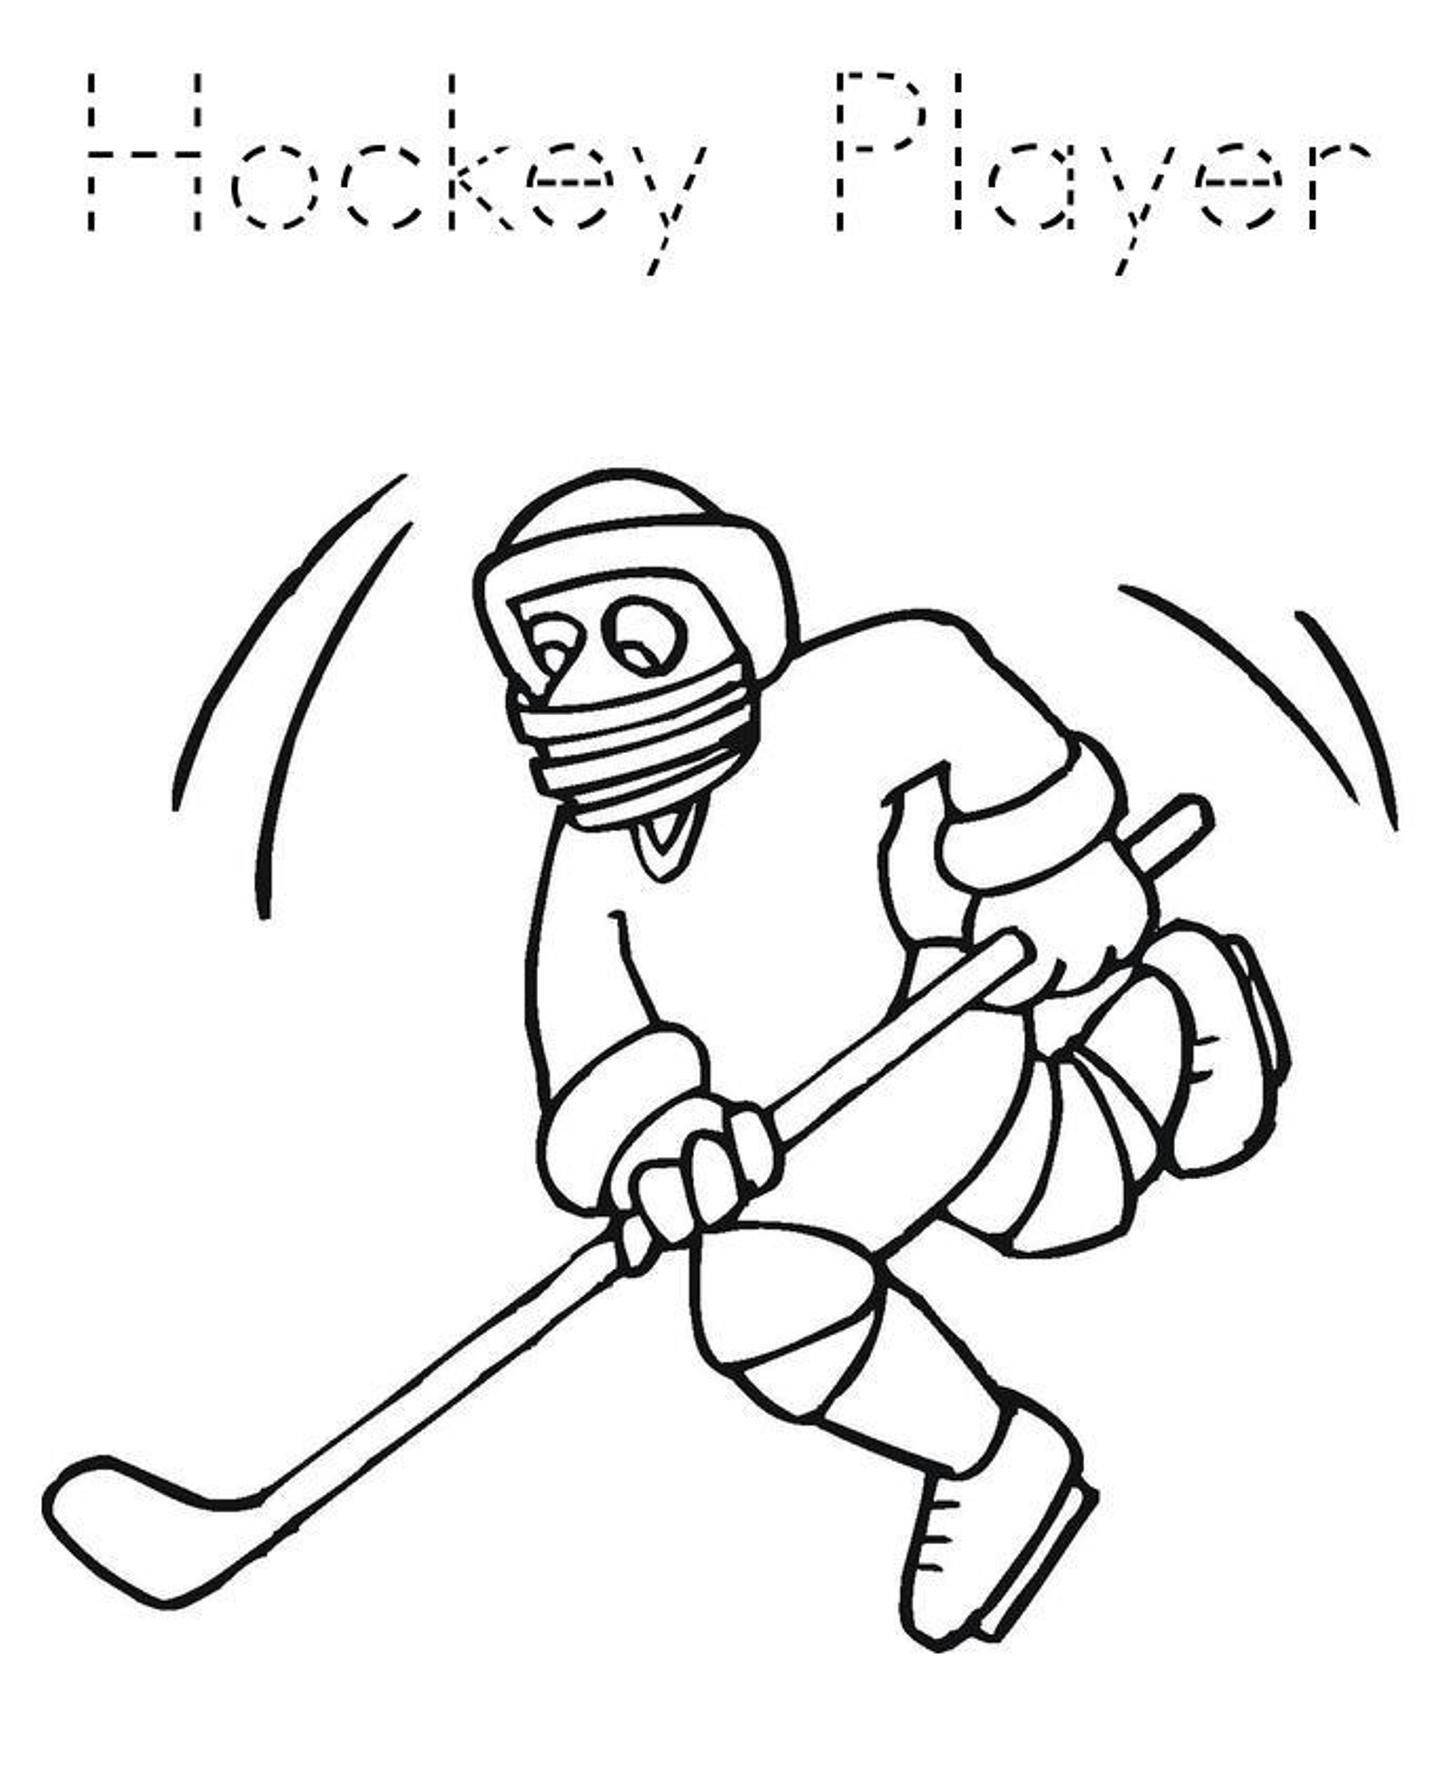 how to draw a cartoon hockey player best goalie illustrations royalty free vector graphics a hockey to player how cartoon draw